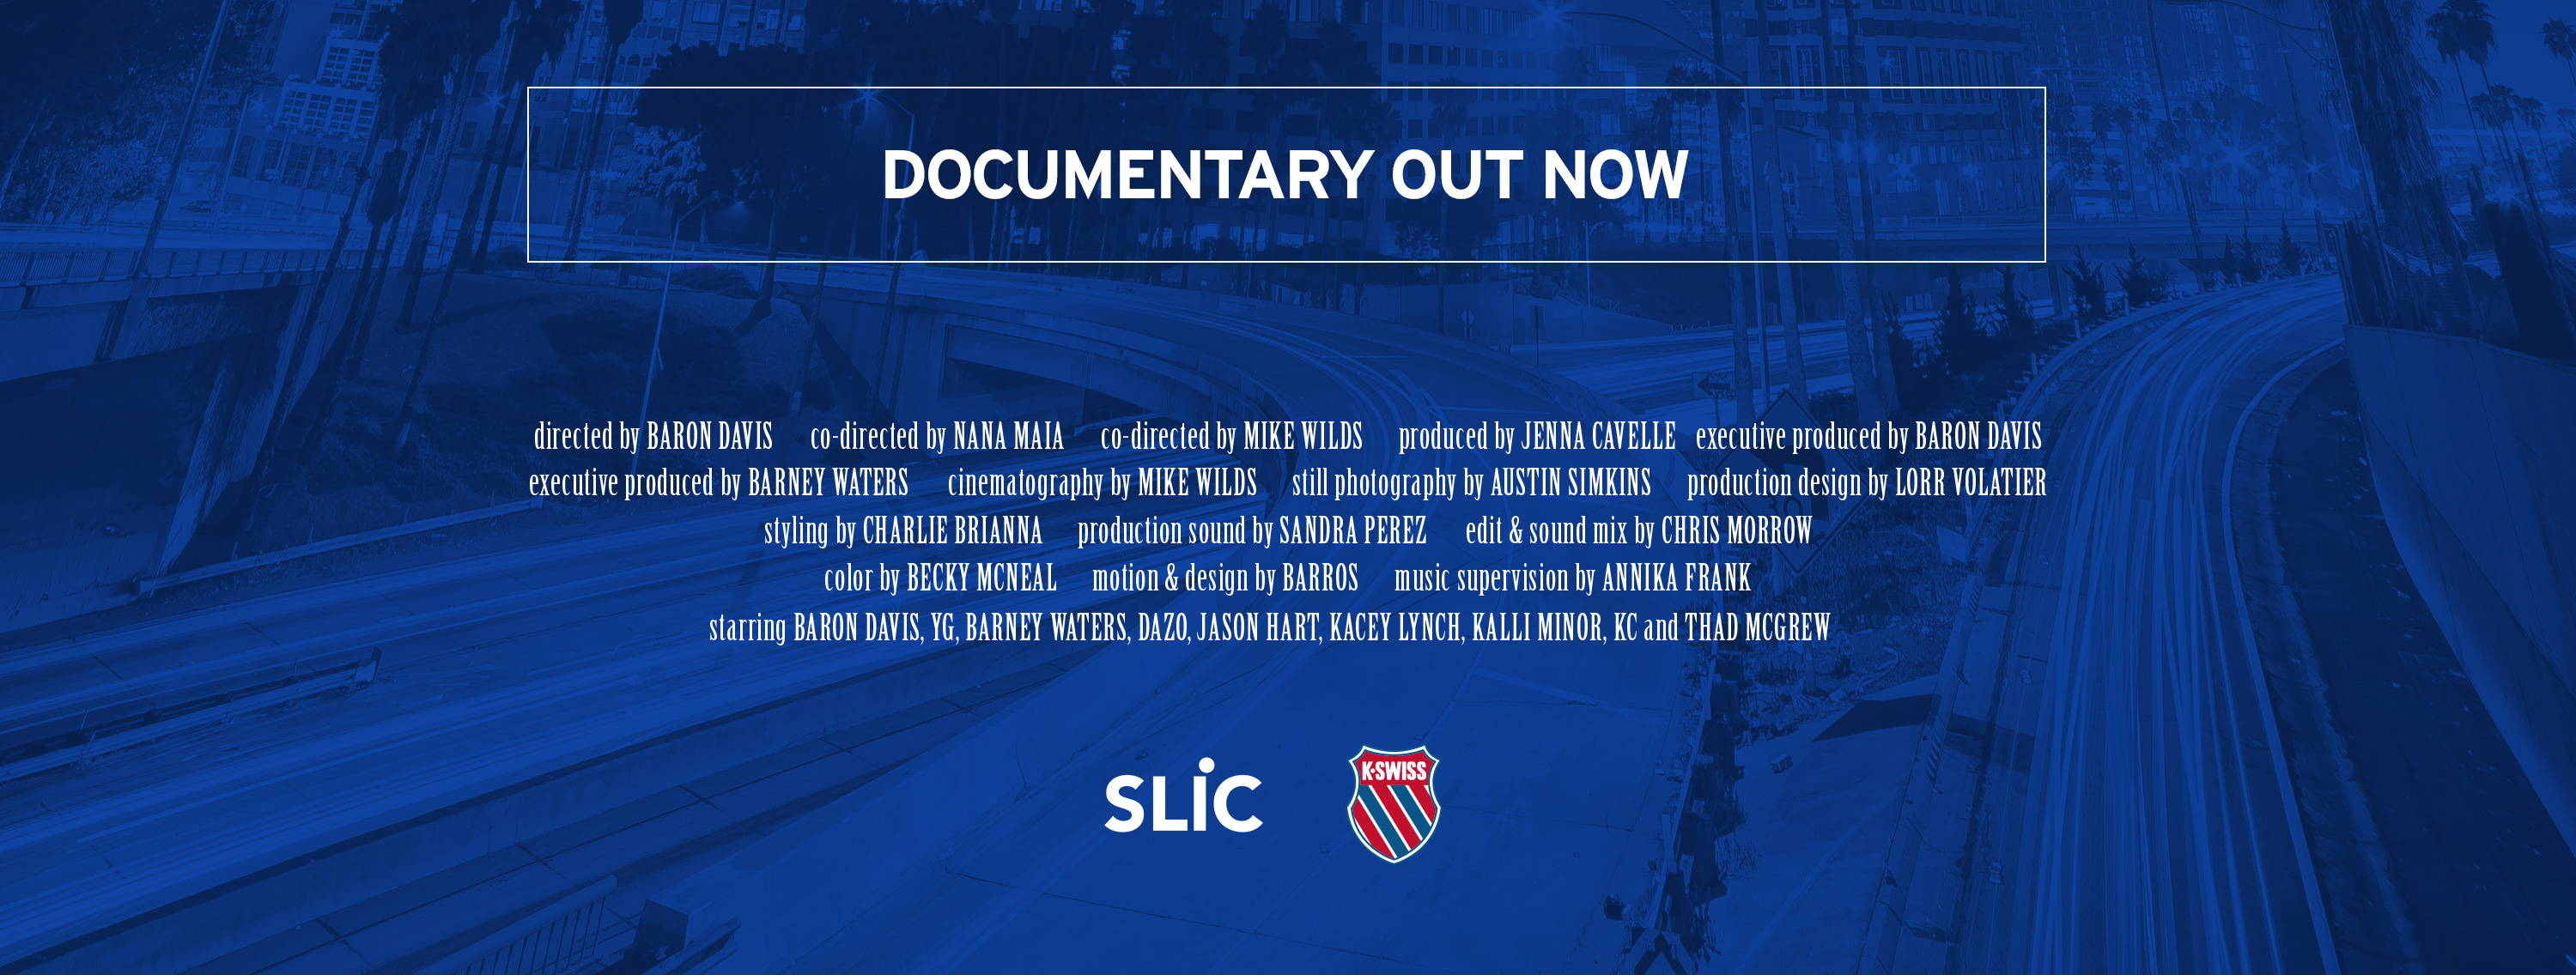 DOCUMENTARY OUT NOW. Documentary Credits.